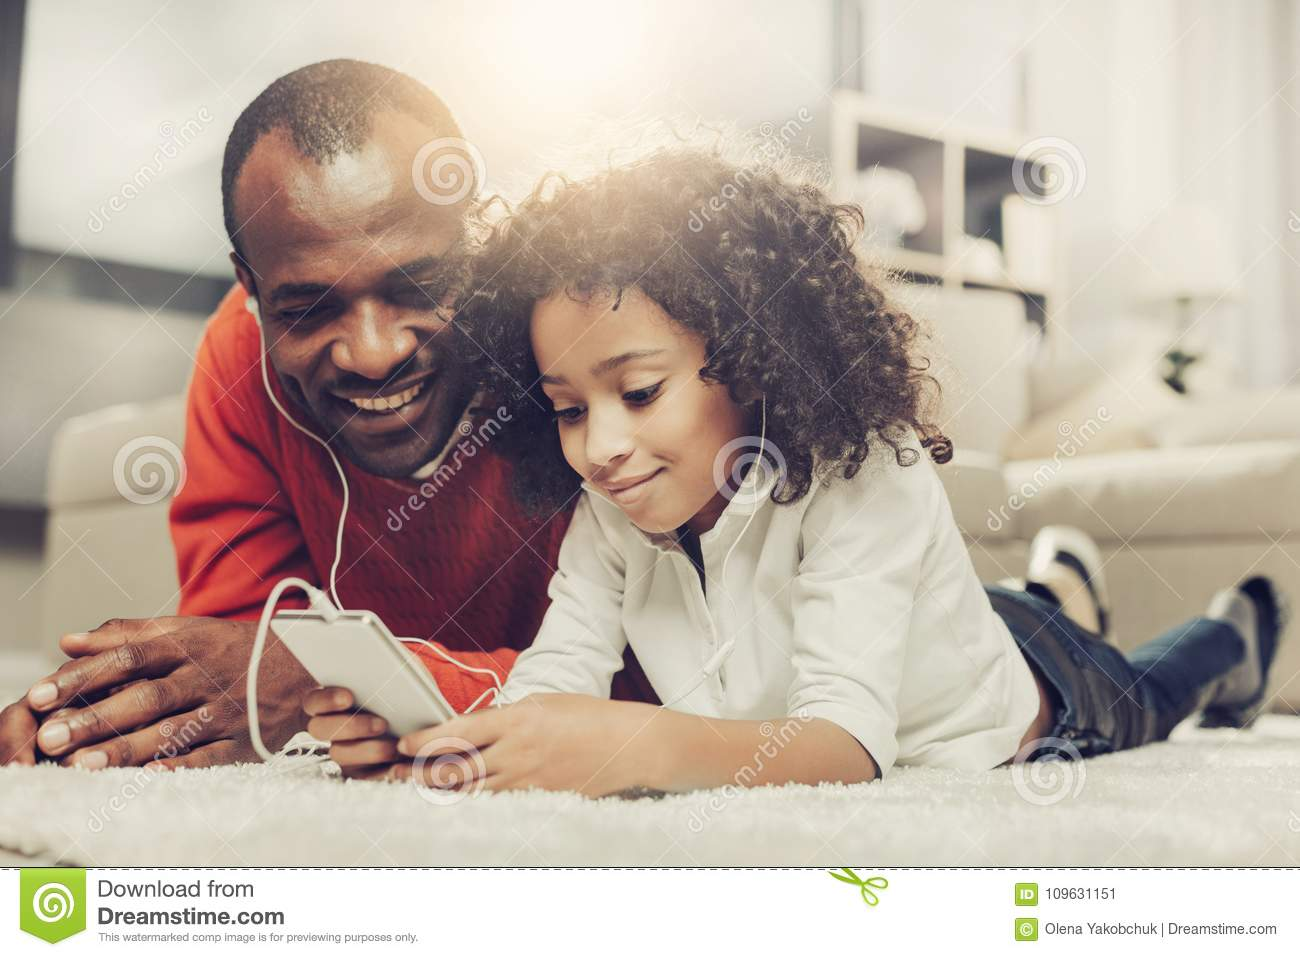 Glad father and kid using mobile phone with earpieces